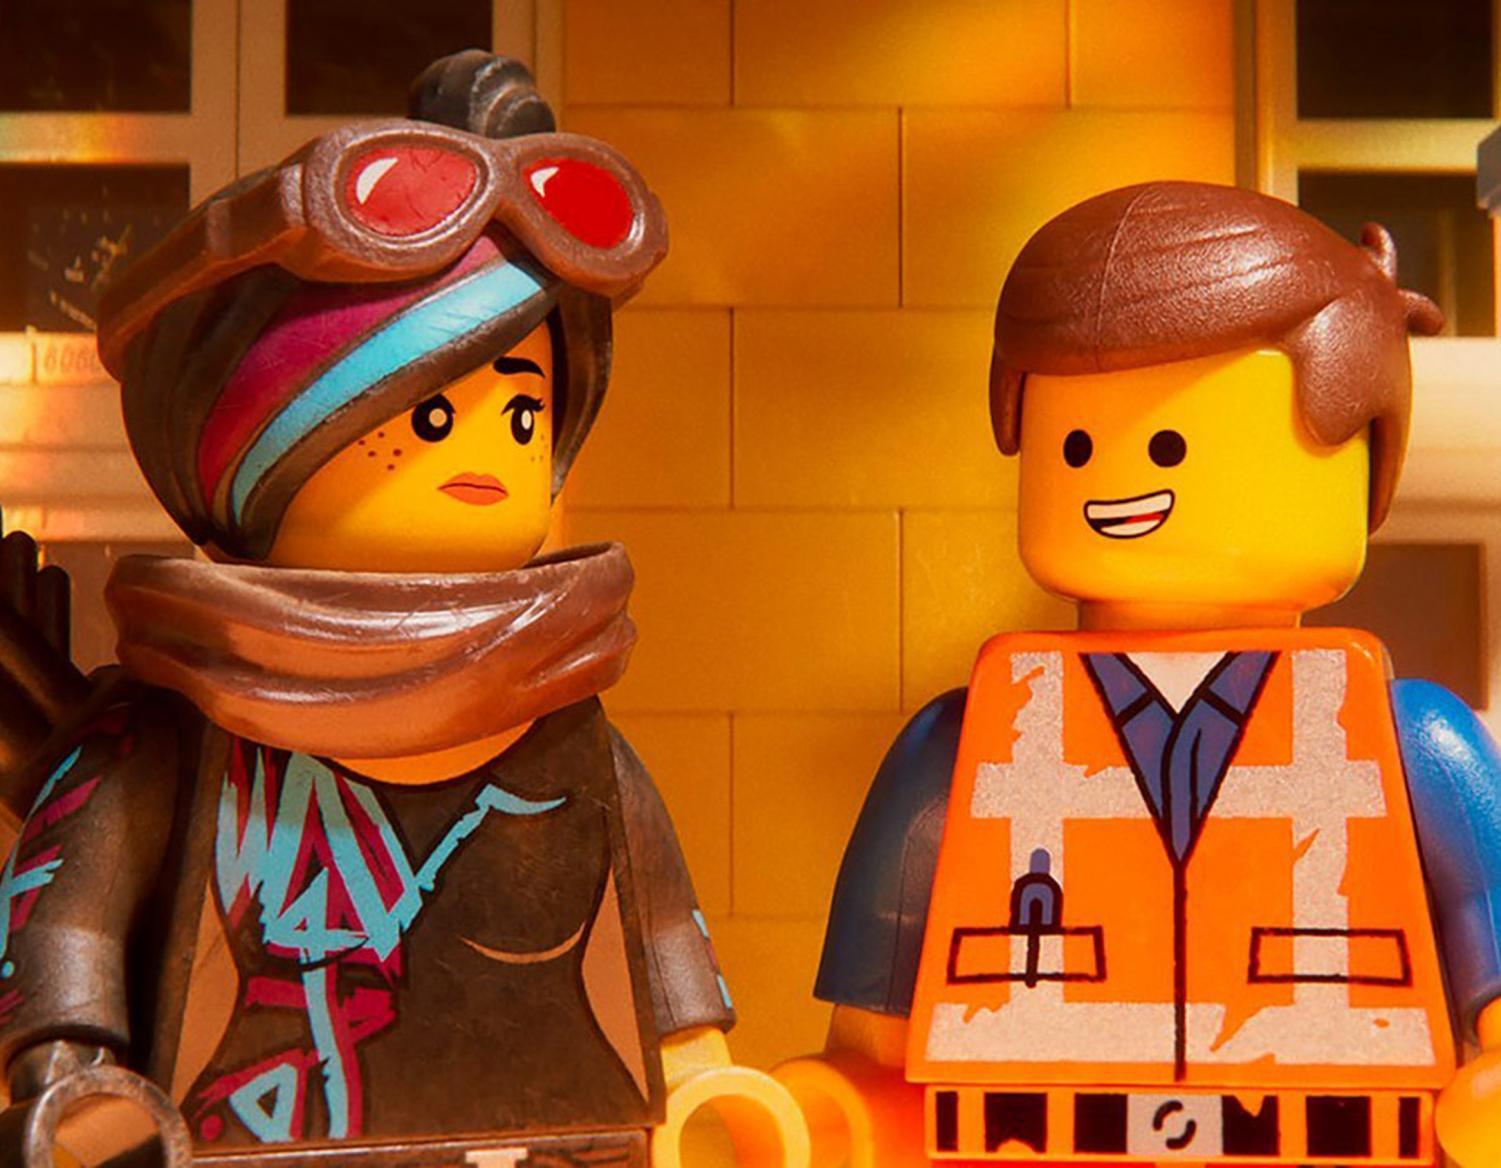 Directed by Mike Mitchell and written by Phil Lord and Christopher Miller,